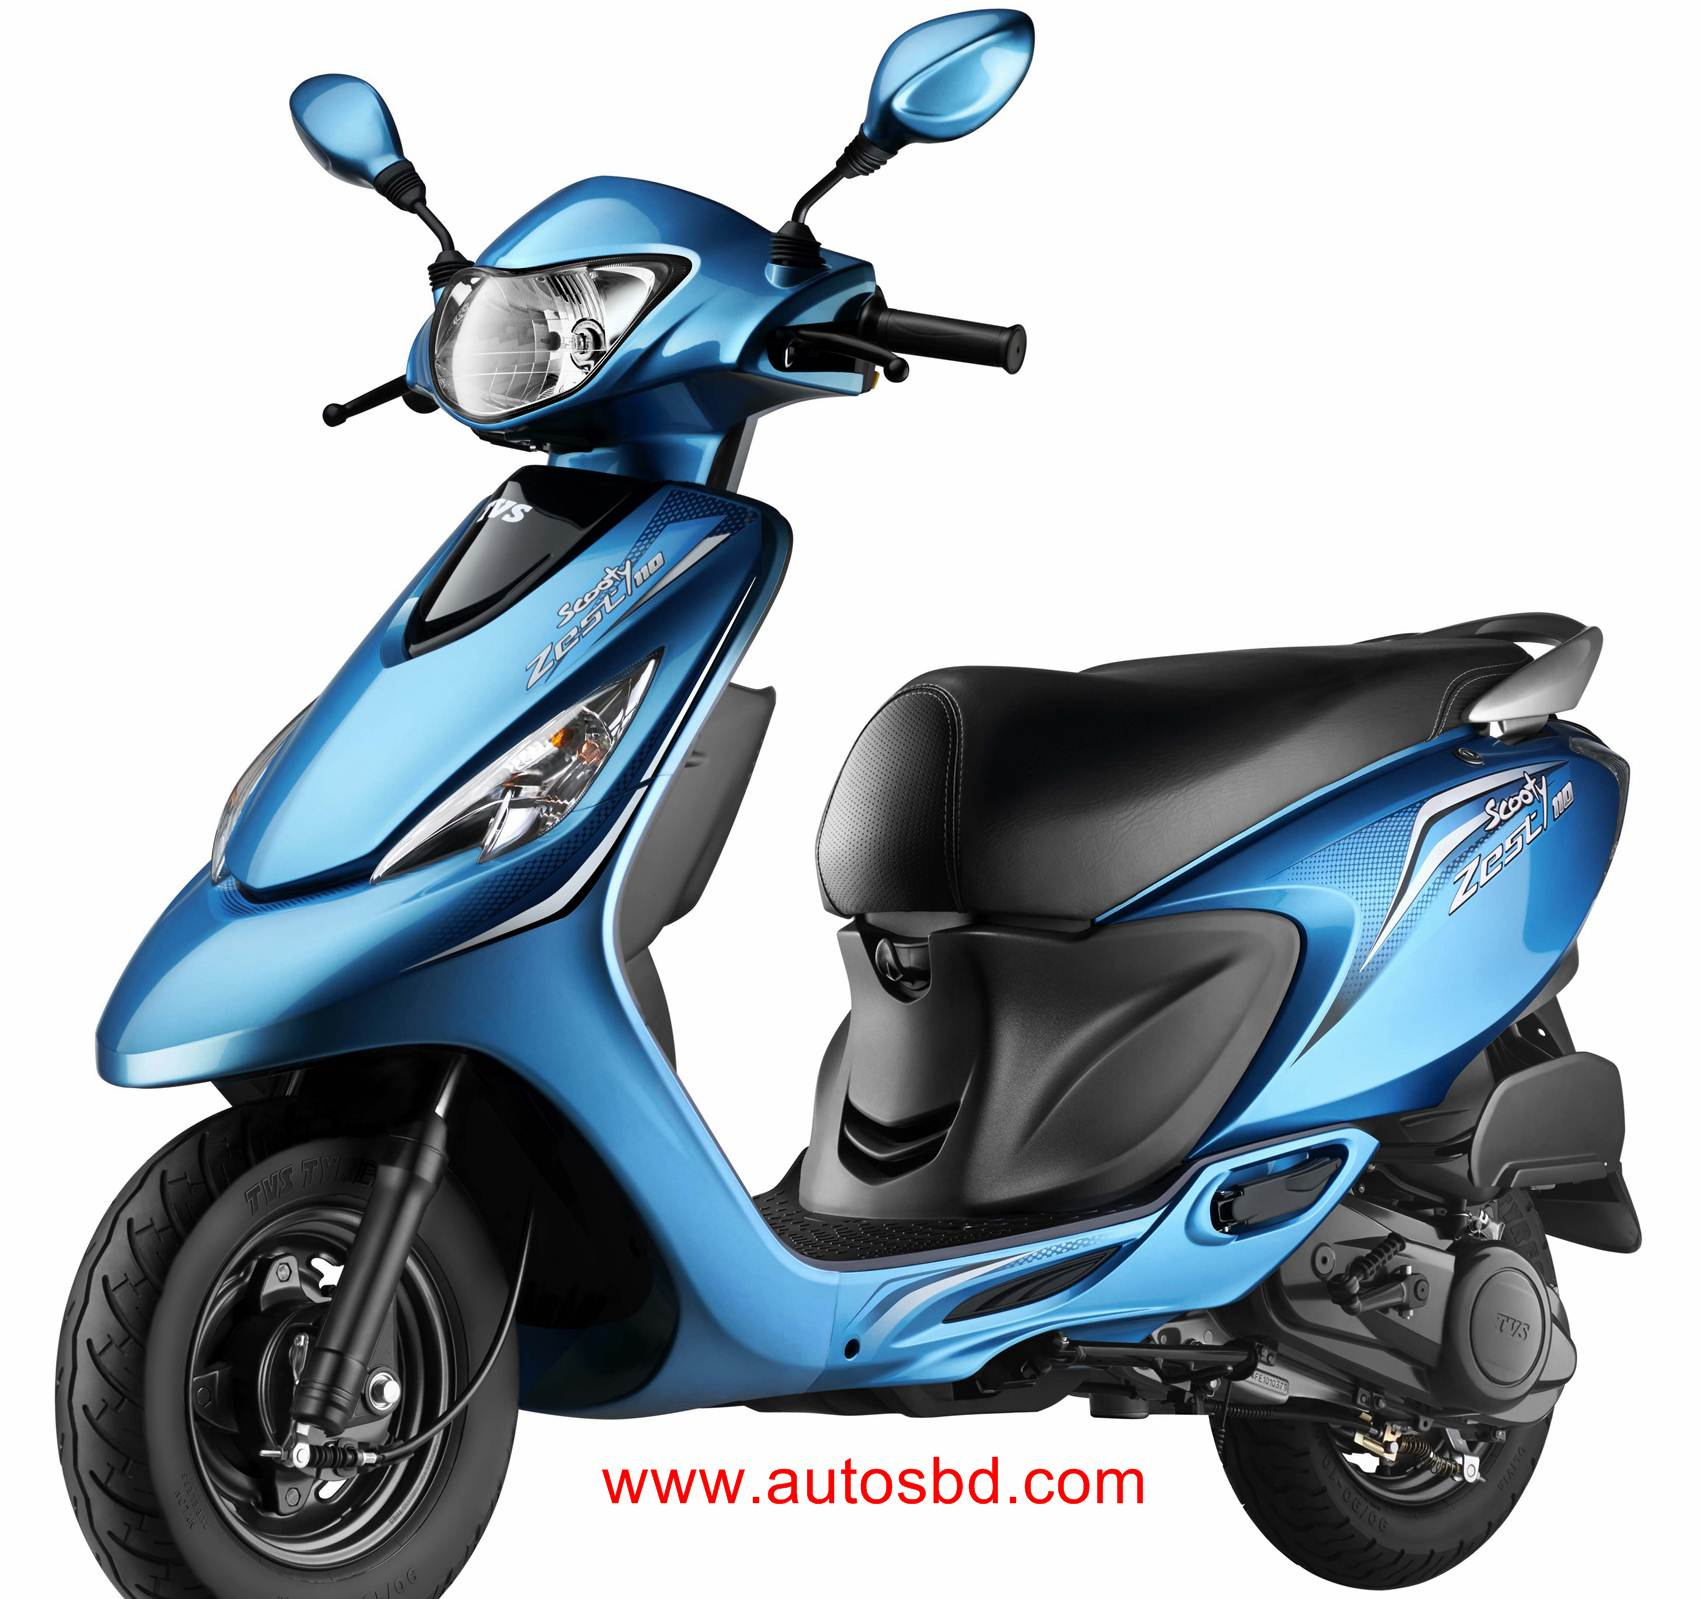 TVS Zest 110cc Motorcycle Price in Bangladesh